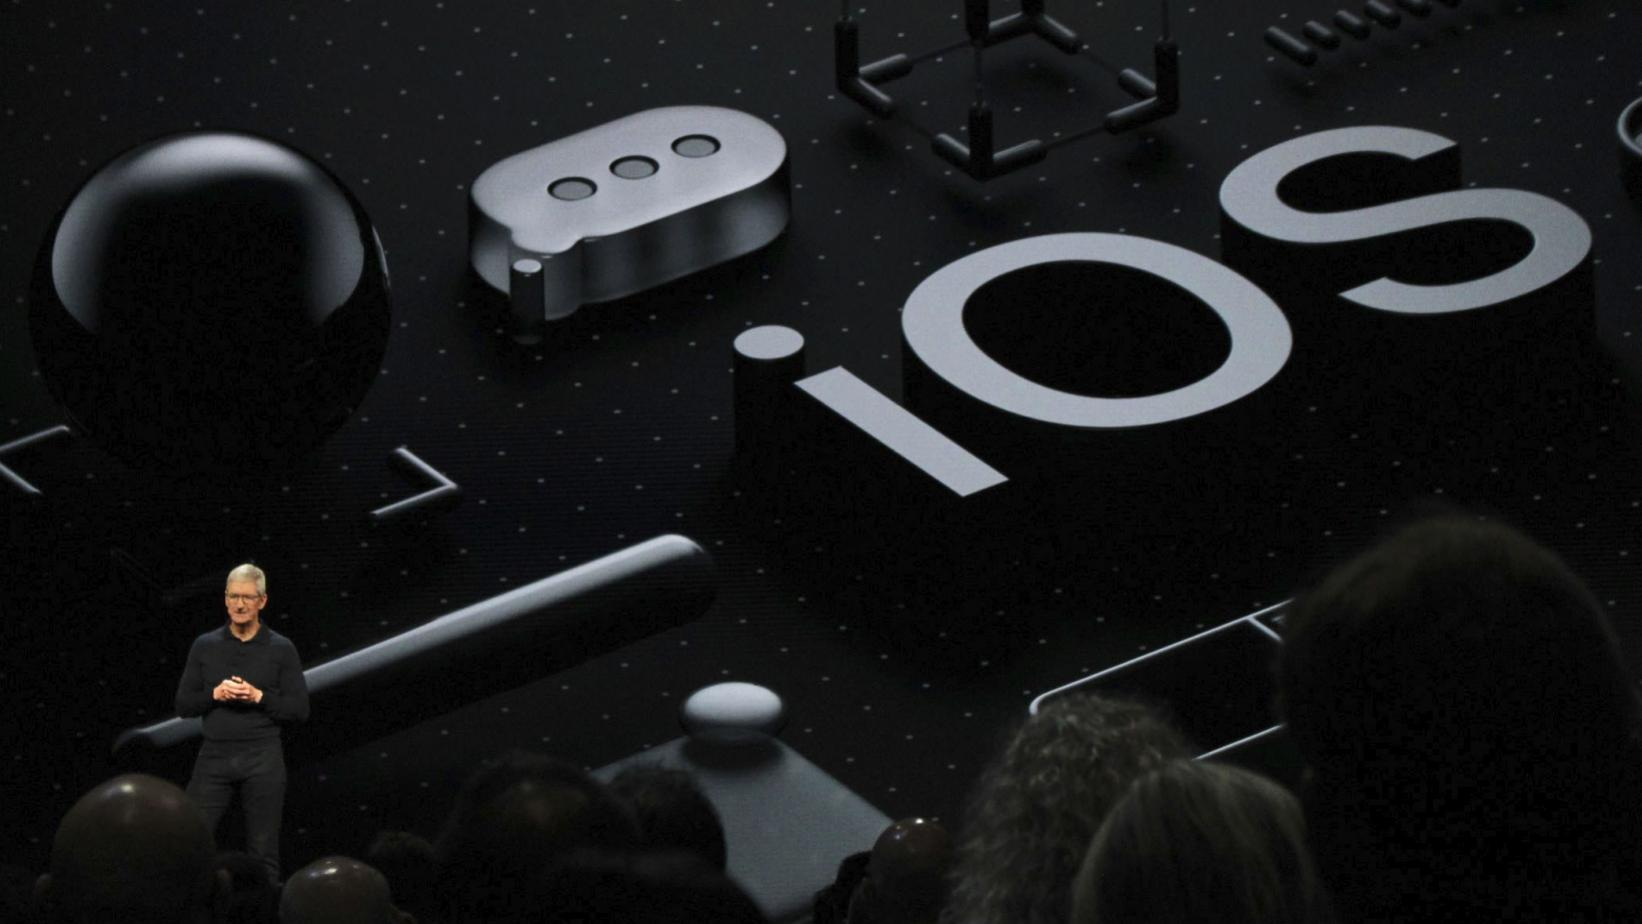 iOS 13 will be unveiled at WWDC